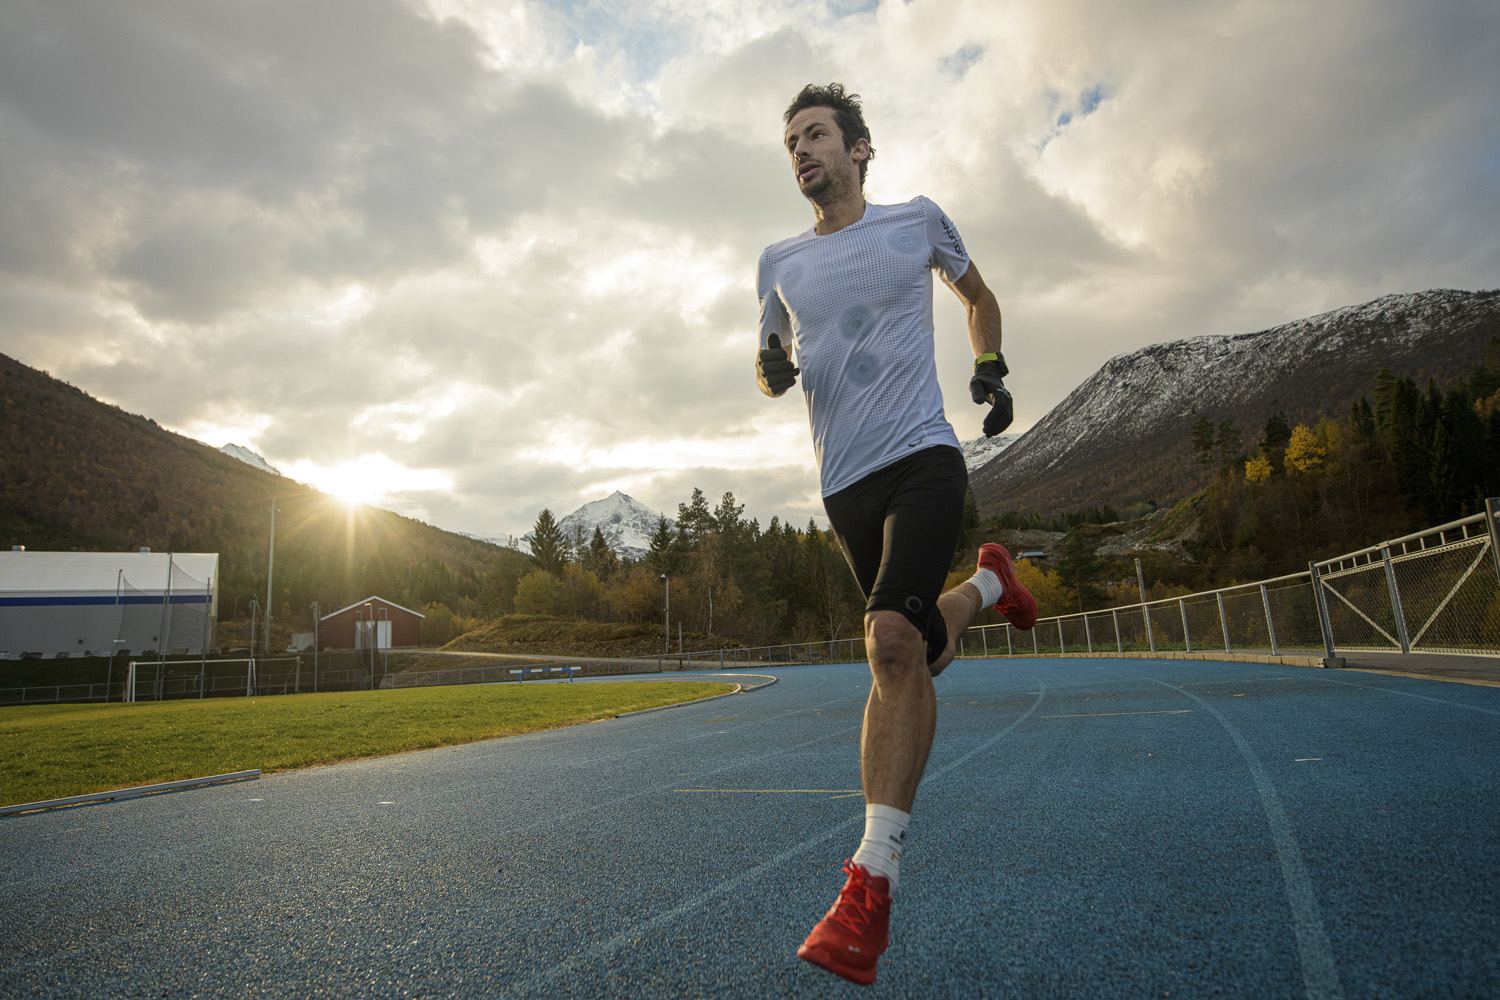 KILIAN JORNET SETS HIS SIGHTS ON 24-HOUR RUNNING CHALLENGE